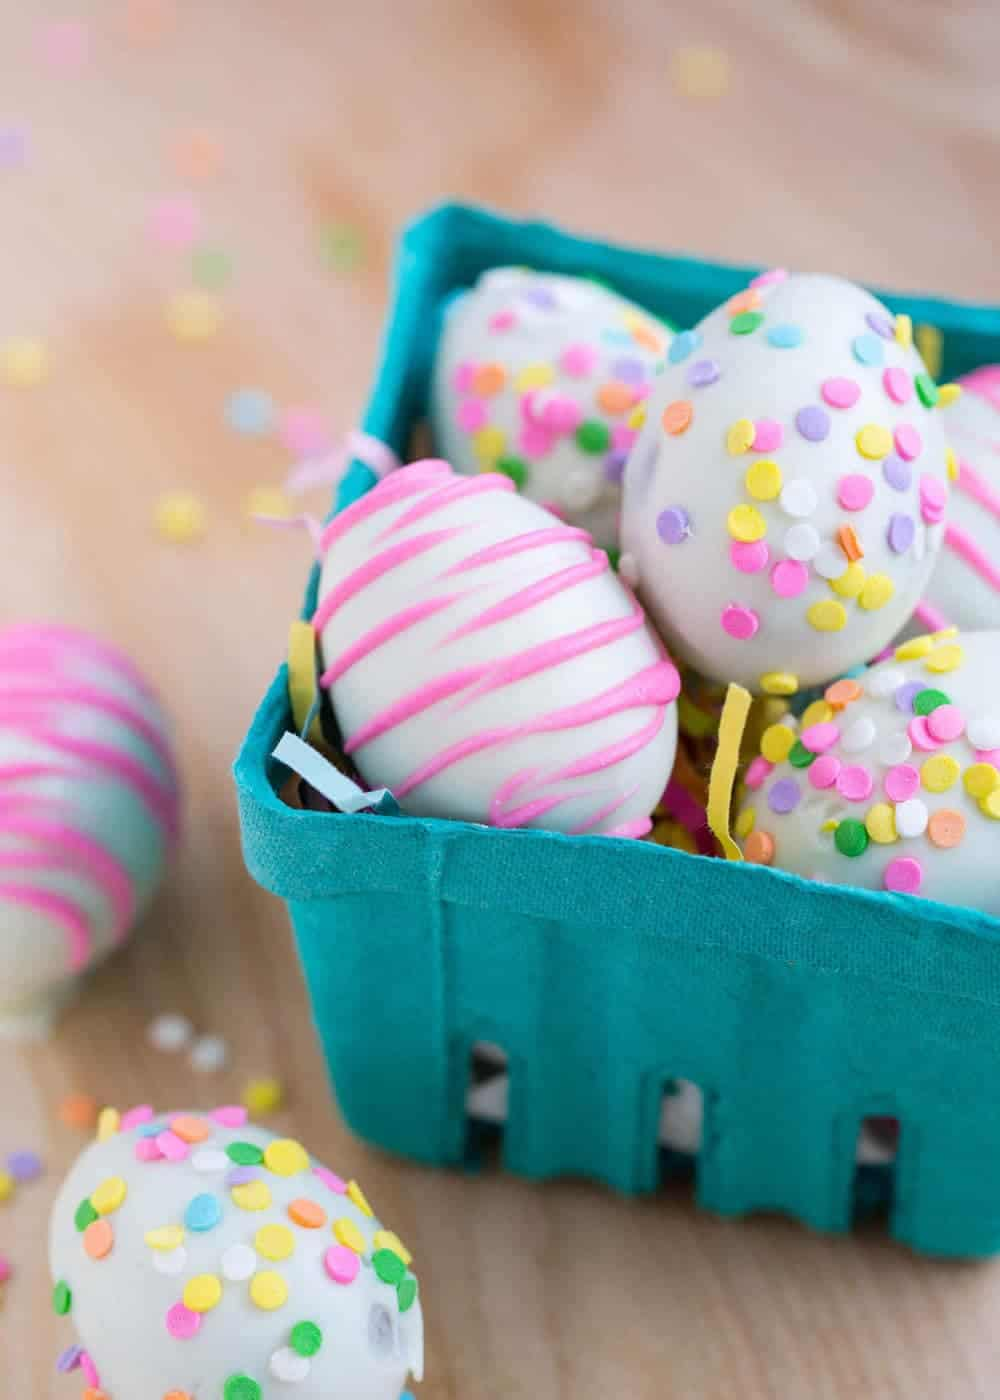 Decorated Cadbury Eggs - a fun and simple Easter treat that the kids can help with!